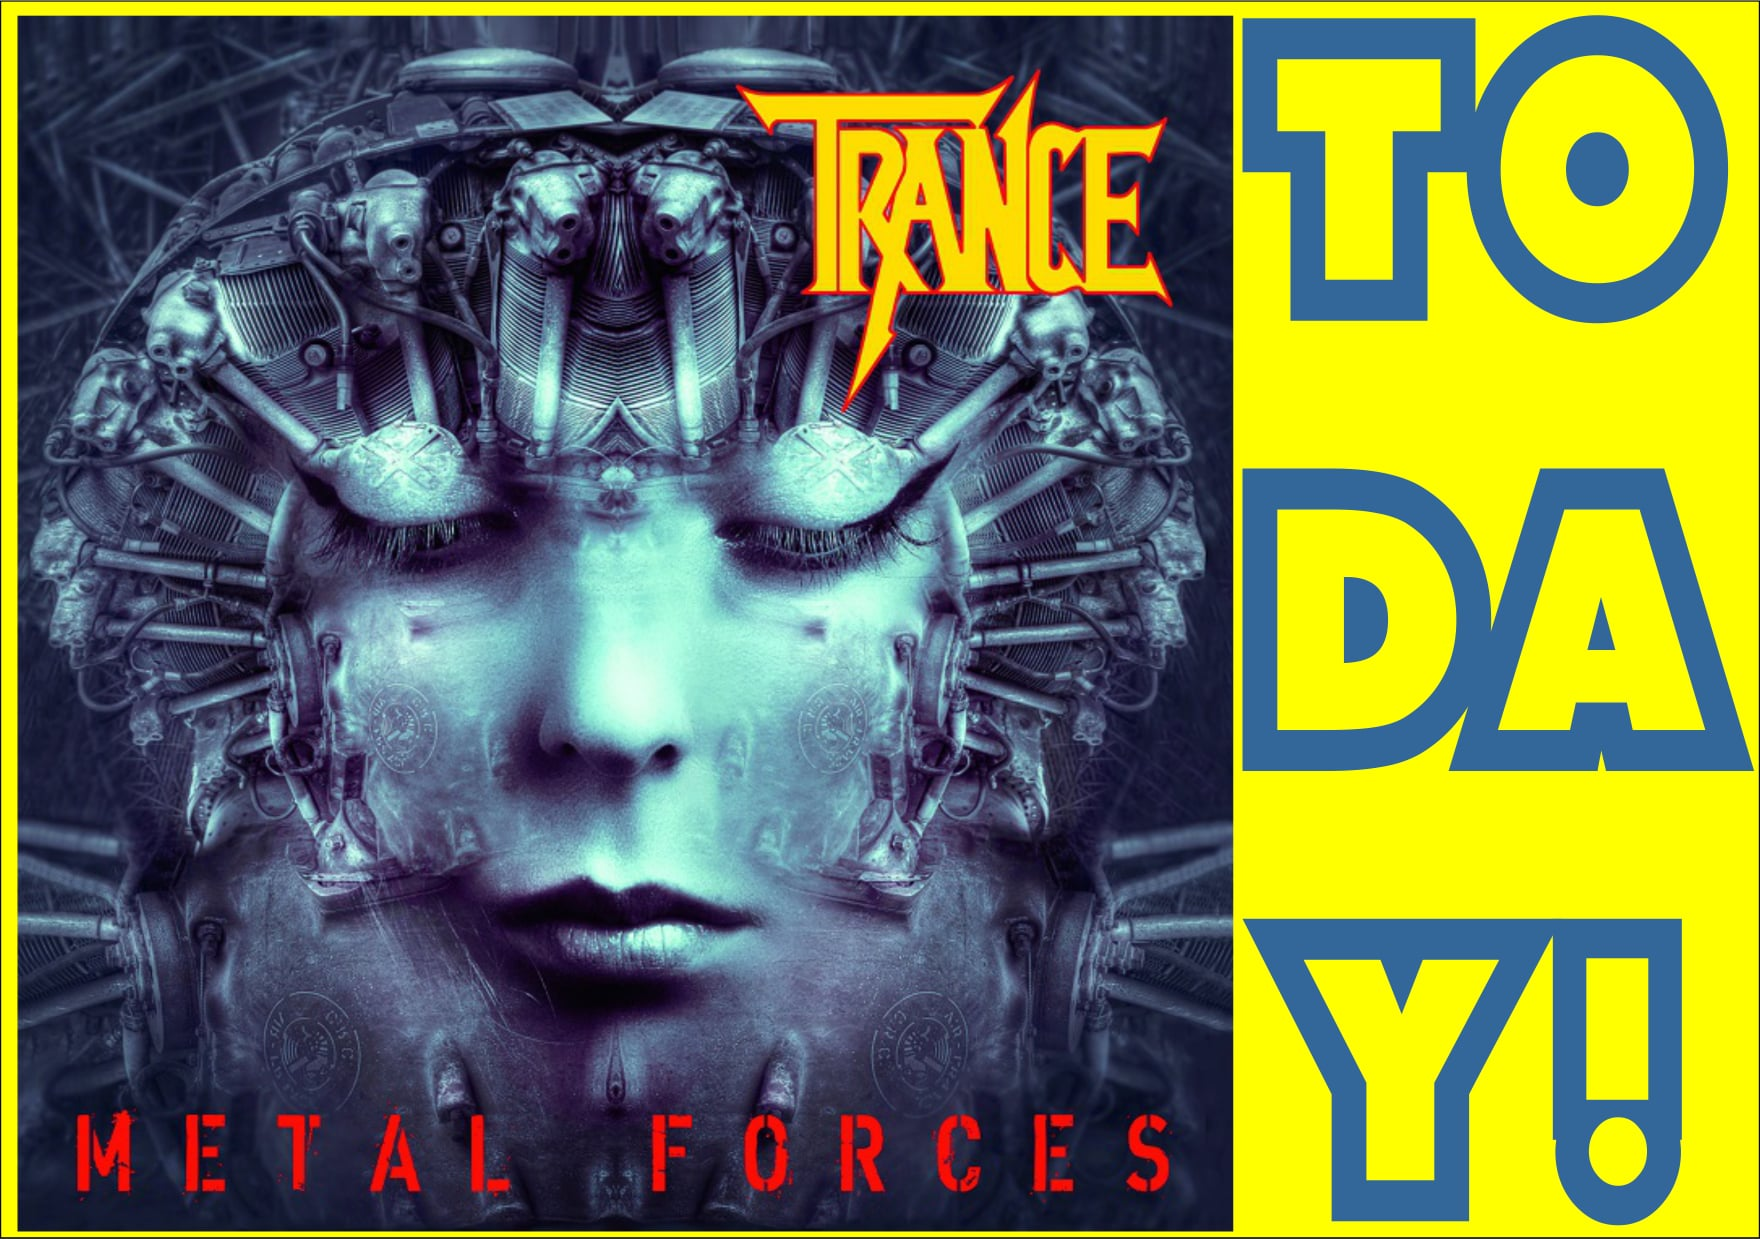 TRANCE Metal Forces (2021) Heavy Metal Allemagne 22852610